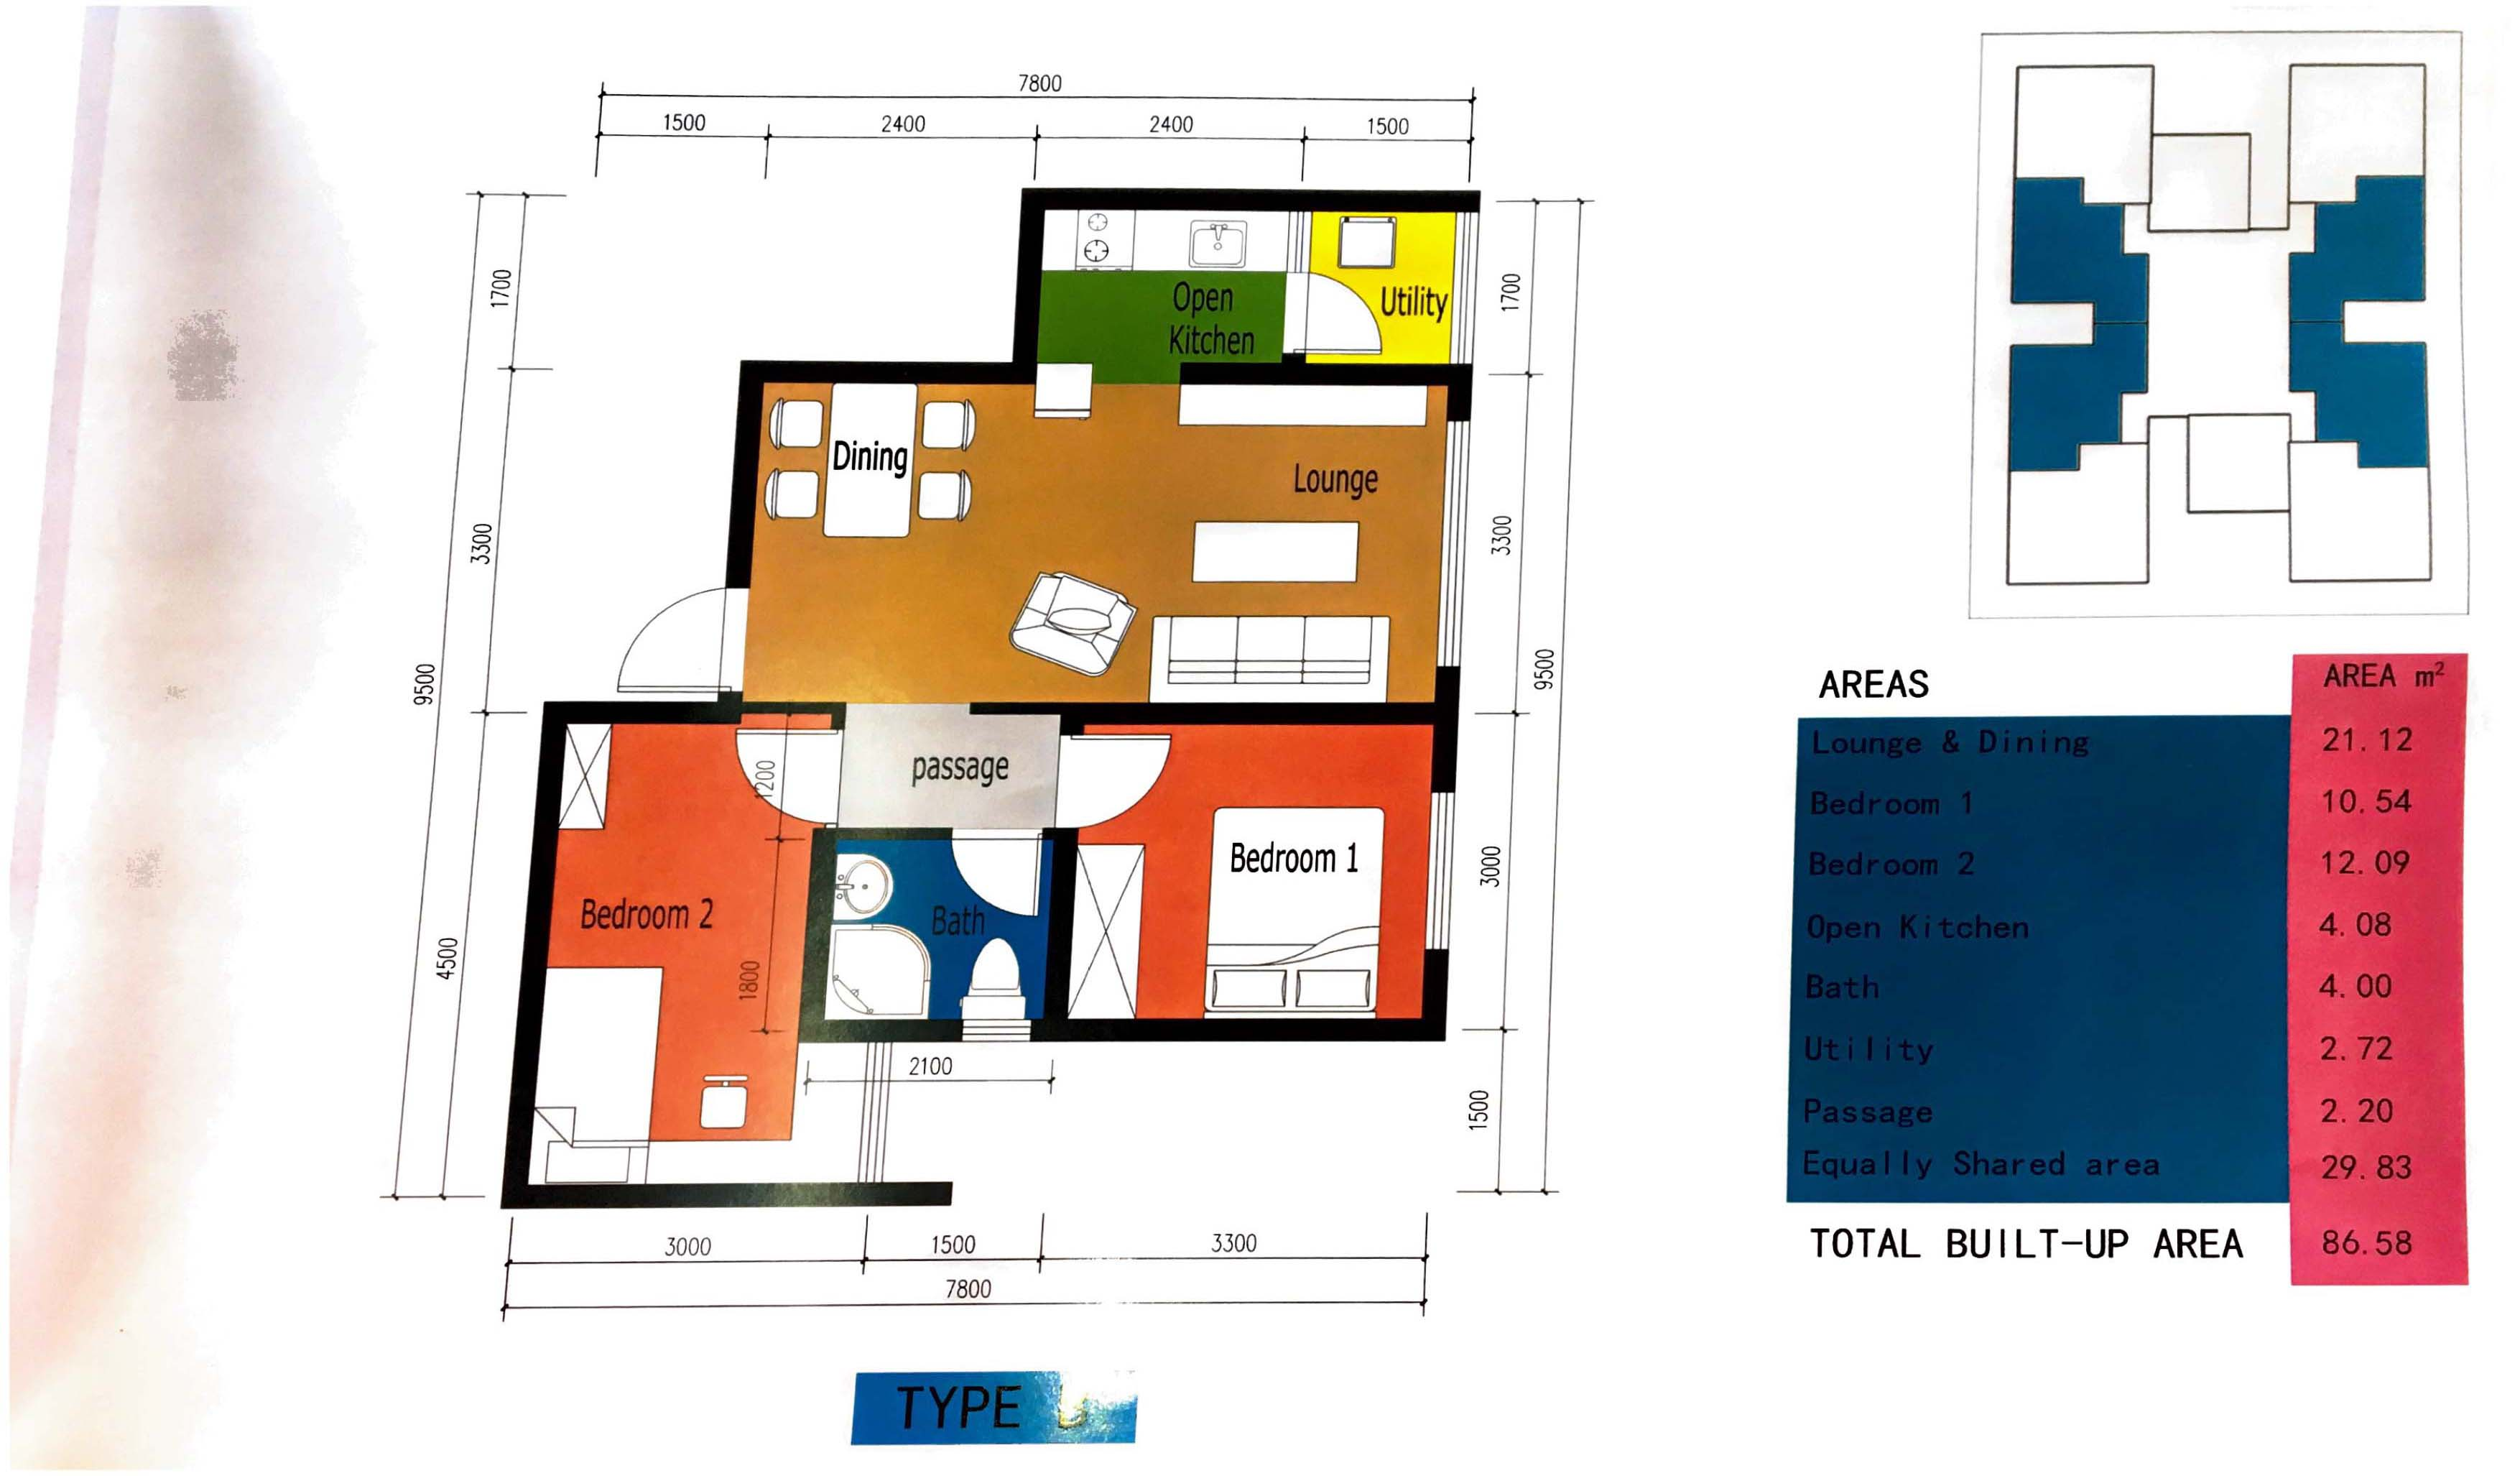 TYPE B 2 BEDROOM FLOOR PLAN